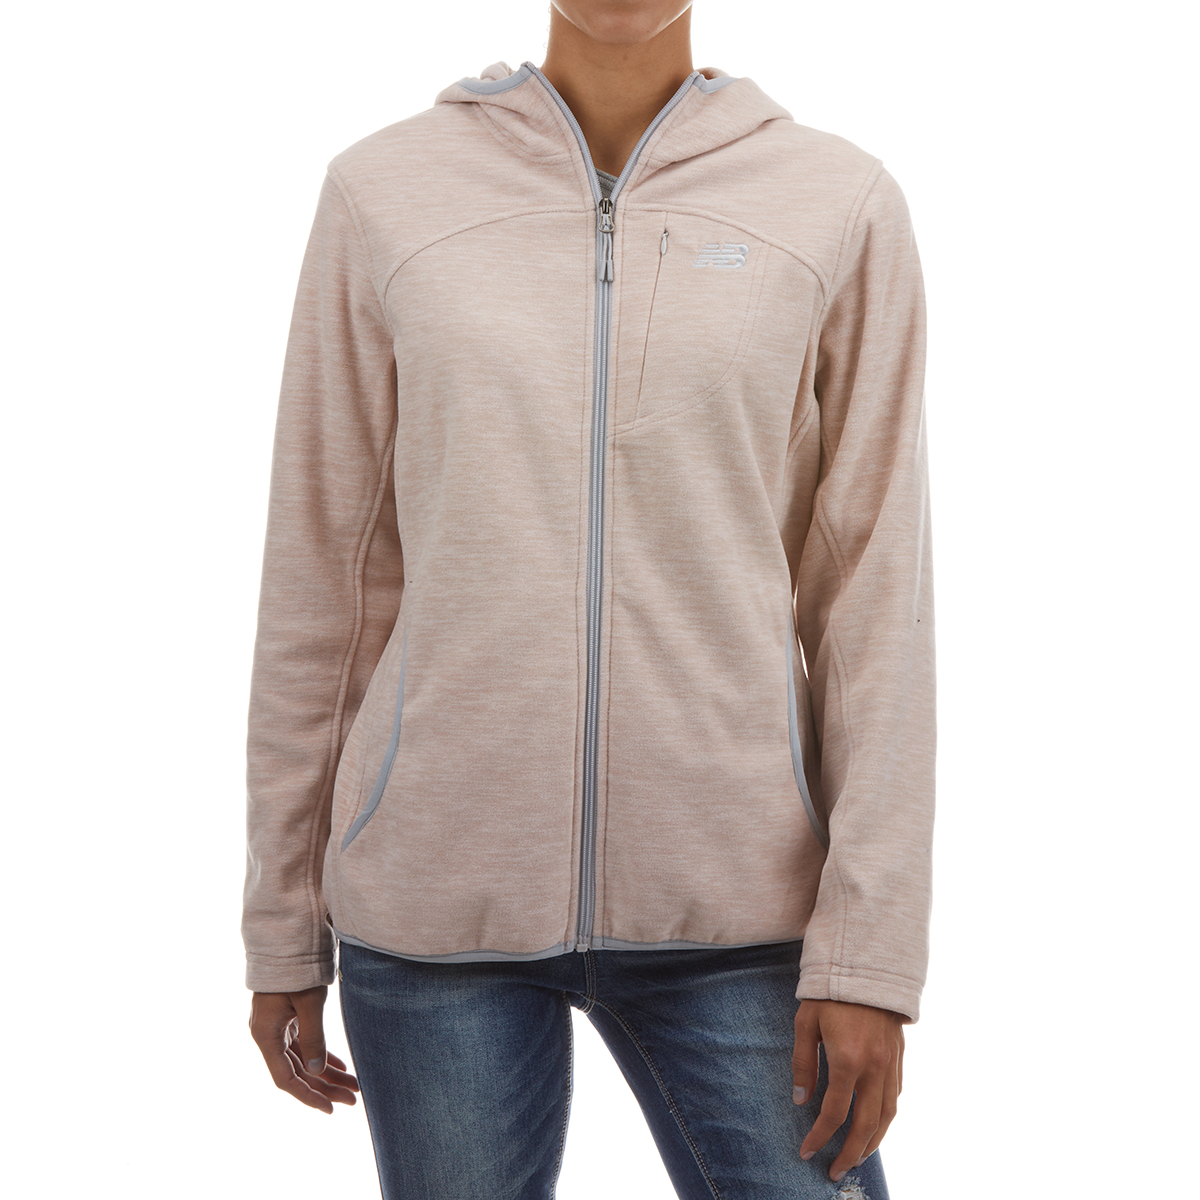 New Balance Women's Full Zip Polar Fleece Spacedye Hoodie - Red, L